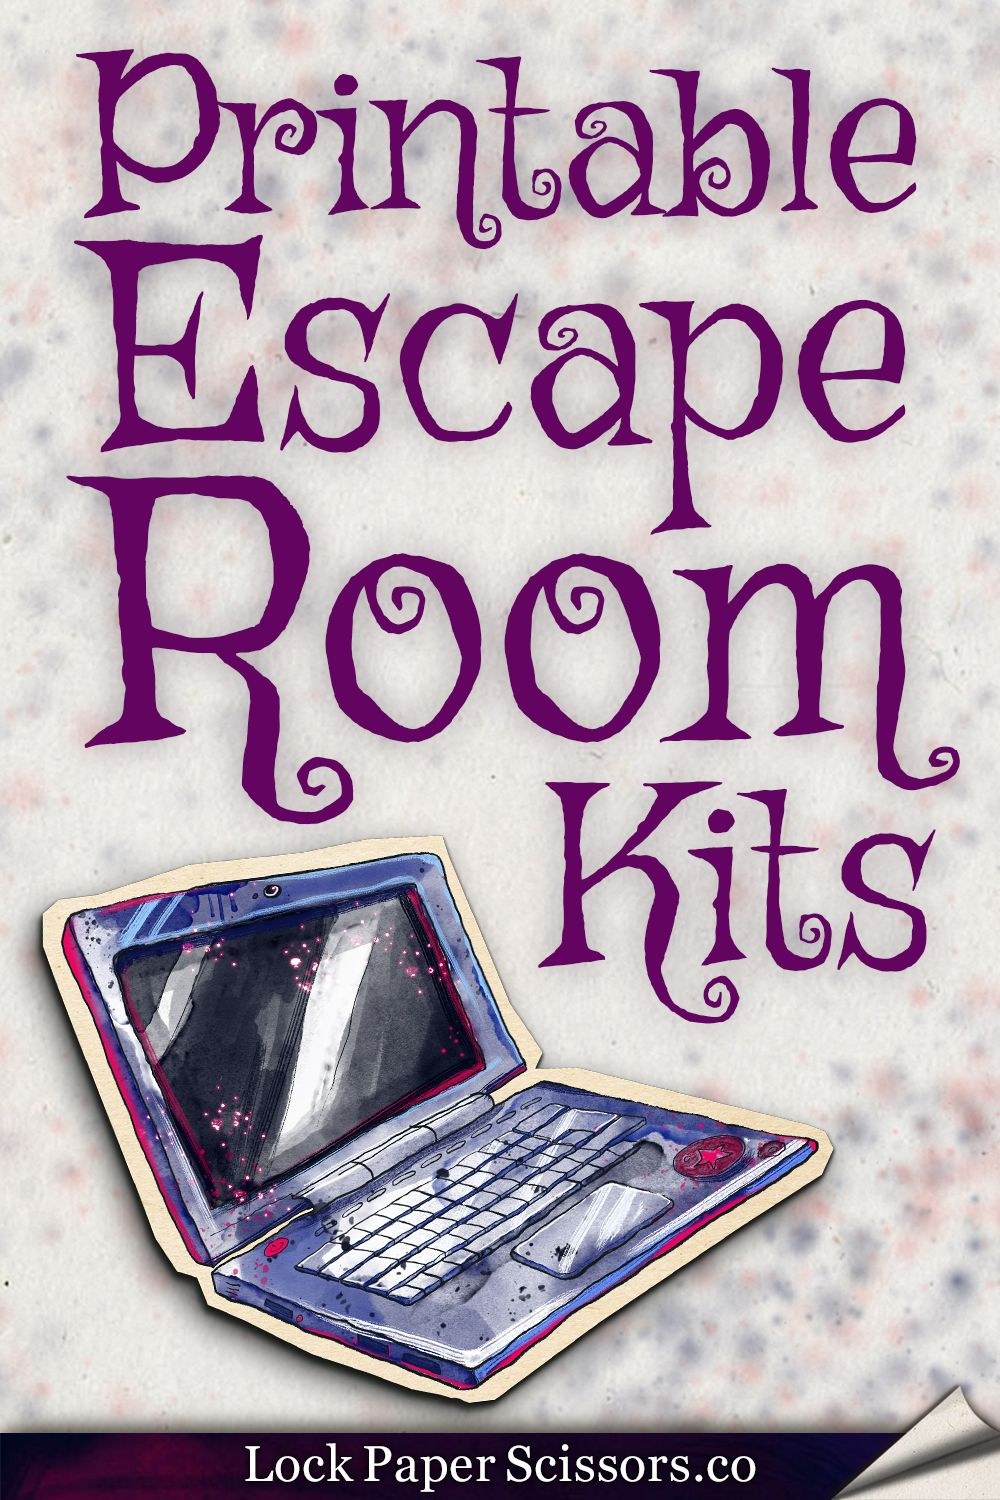 Best escape room house party ever? Maybe.